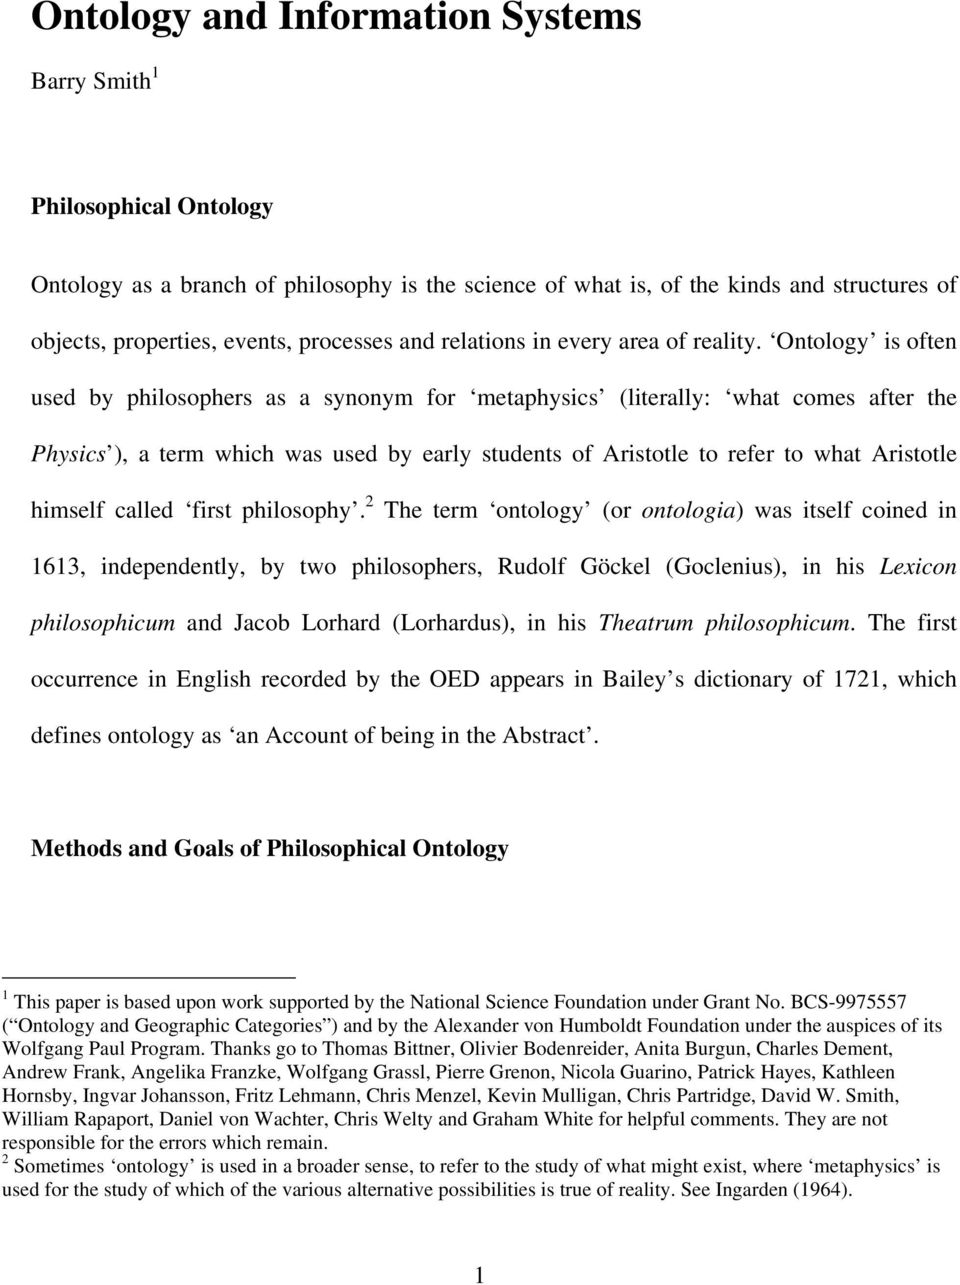 Ontology is often used by philosophers as a synonym for metaphysics (literally: what comes after the Physics ), a term which was used by early students of Aristotle to refer to what Aristotle himself